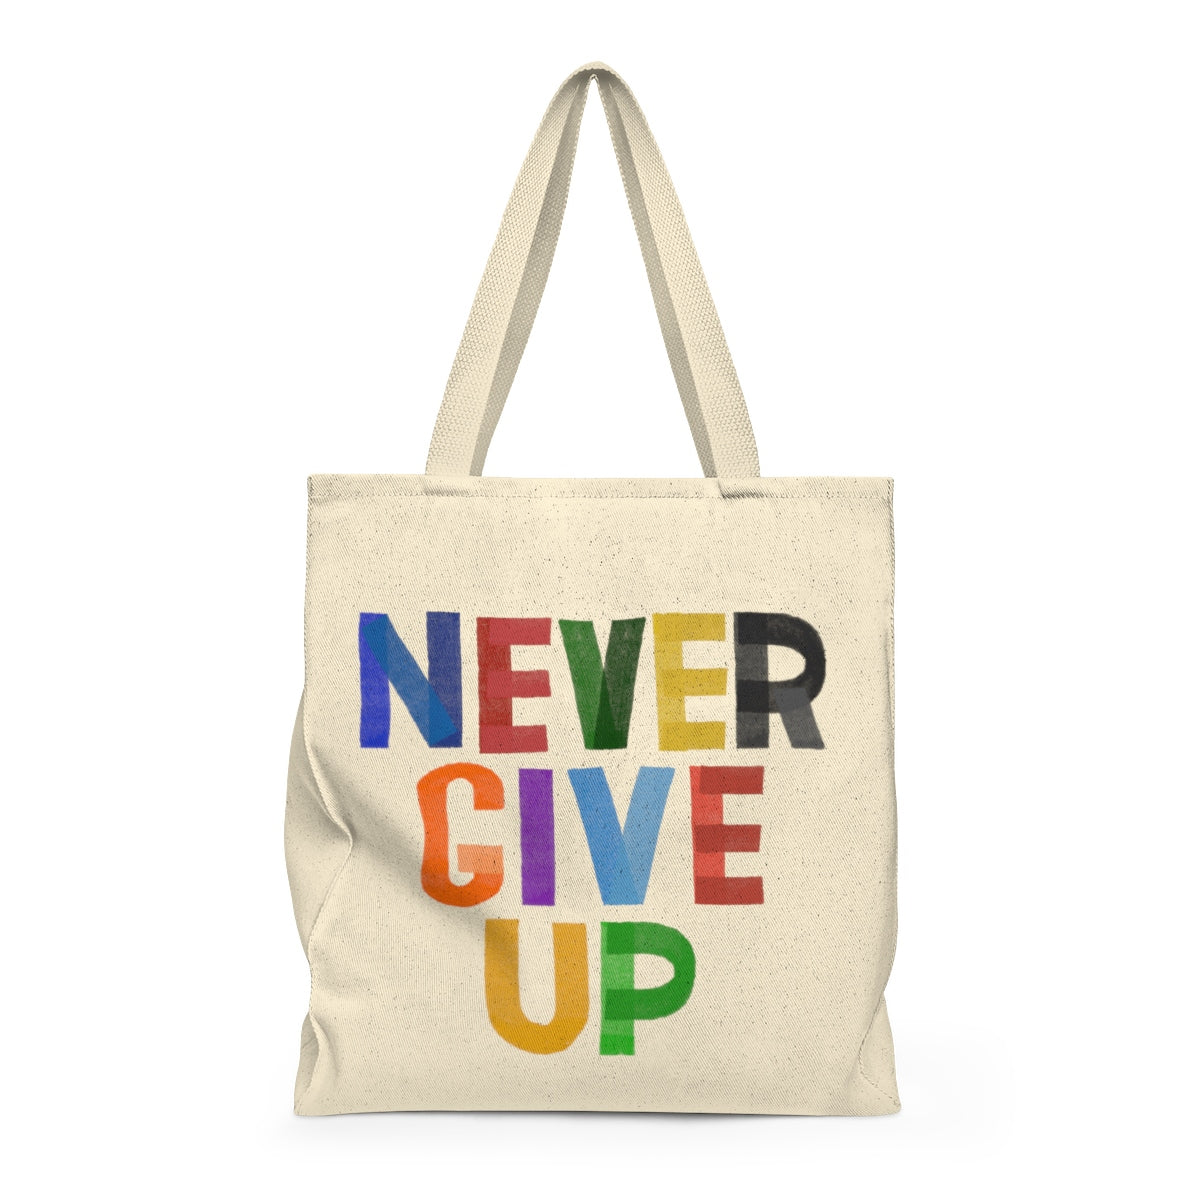 Never Give Up Tote